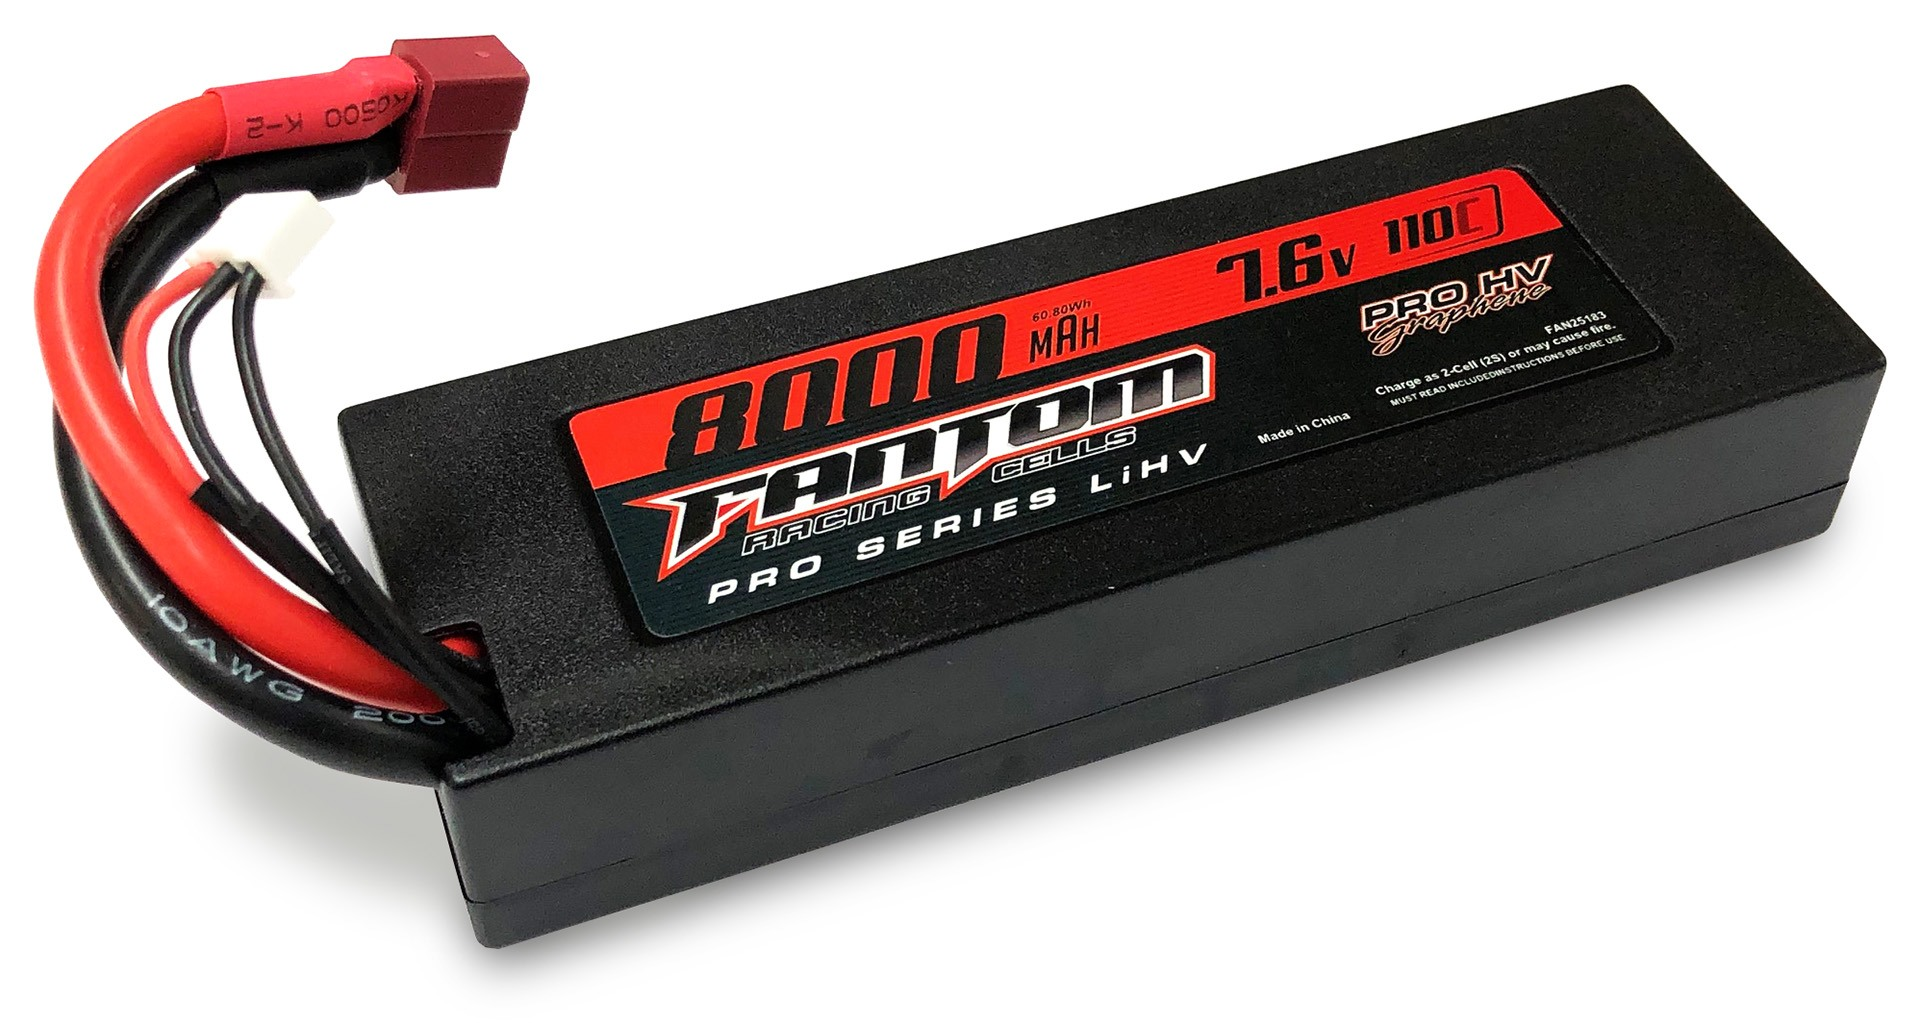 New Release - Fantom PRO HV Silicon Graphene LiHV 8000mAh battery